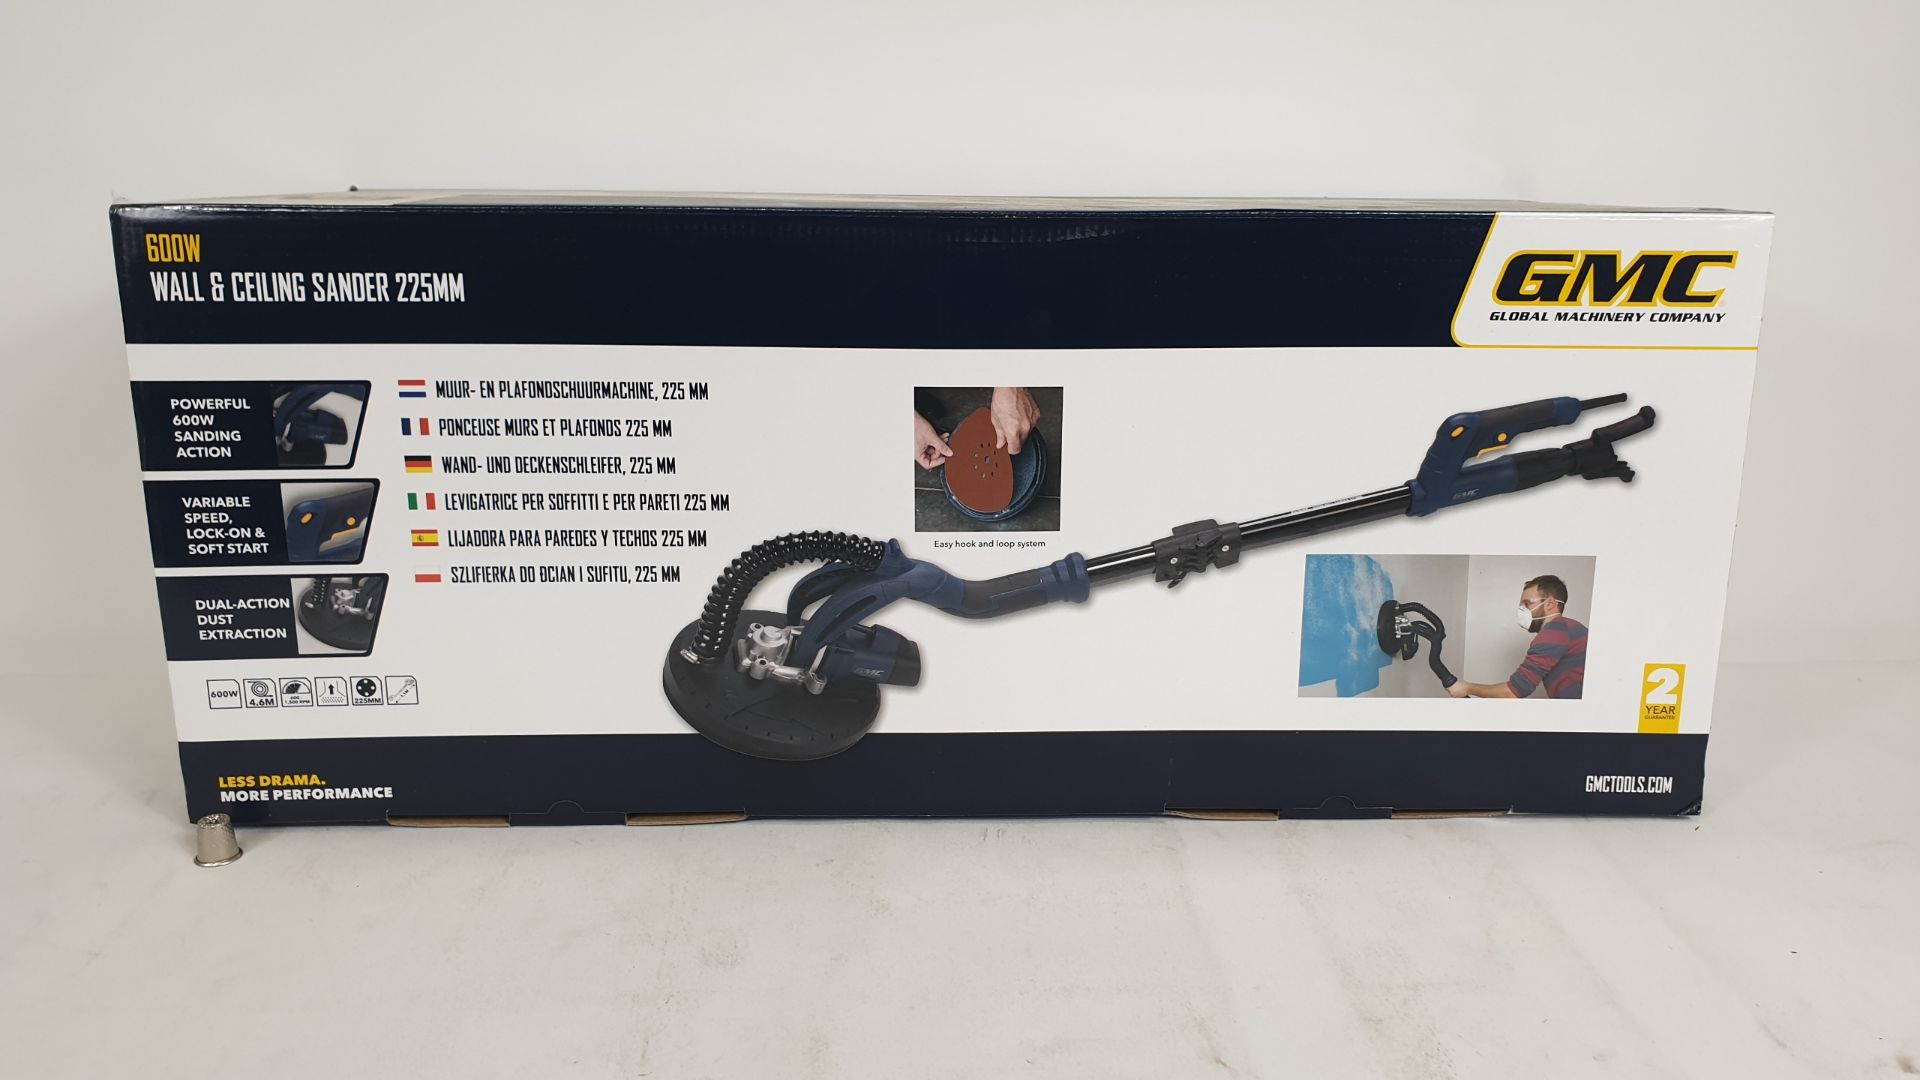 Lot 1562 - (LOT FOR THURSDAY 28TH MAY AUCTION) GMC 600W WALL AND CEILING SANDER 225M (PRODUCT CODE 264803) - (